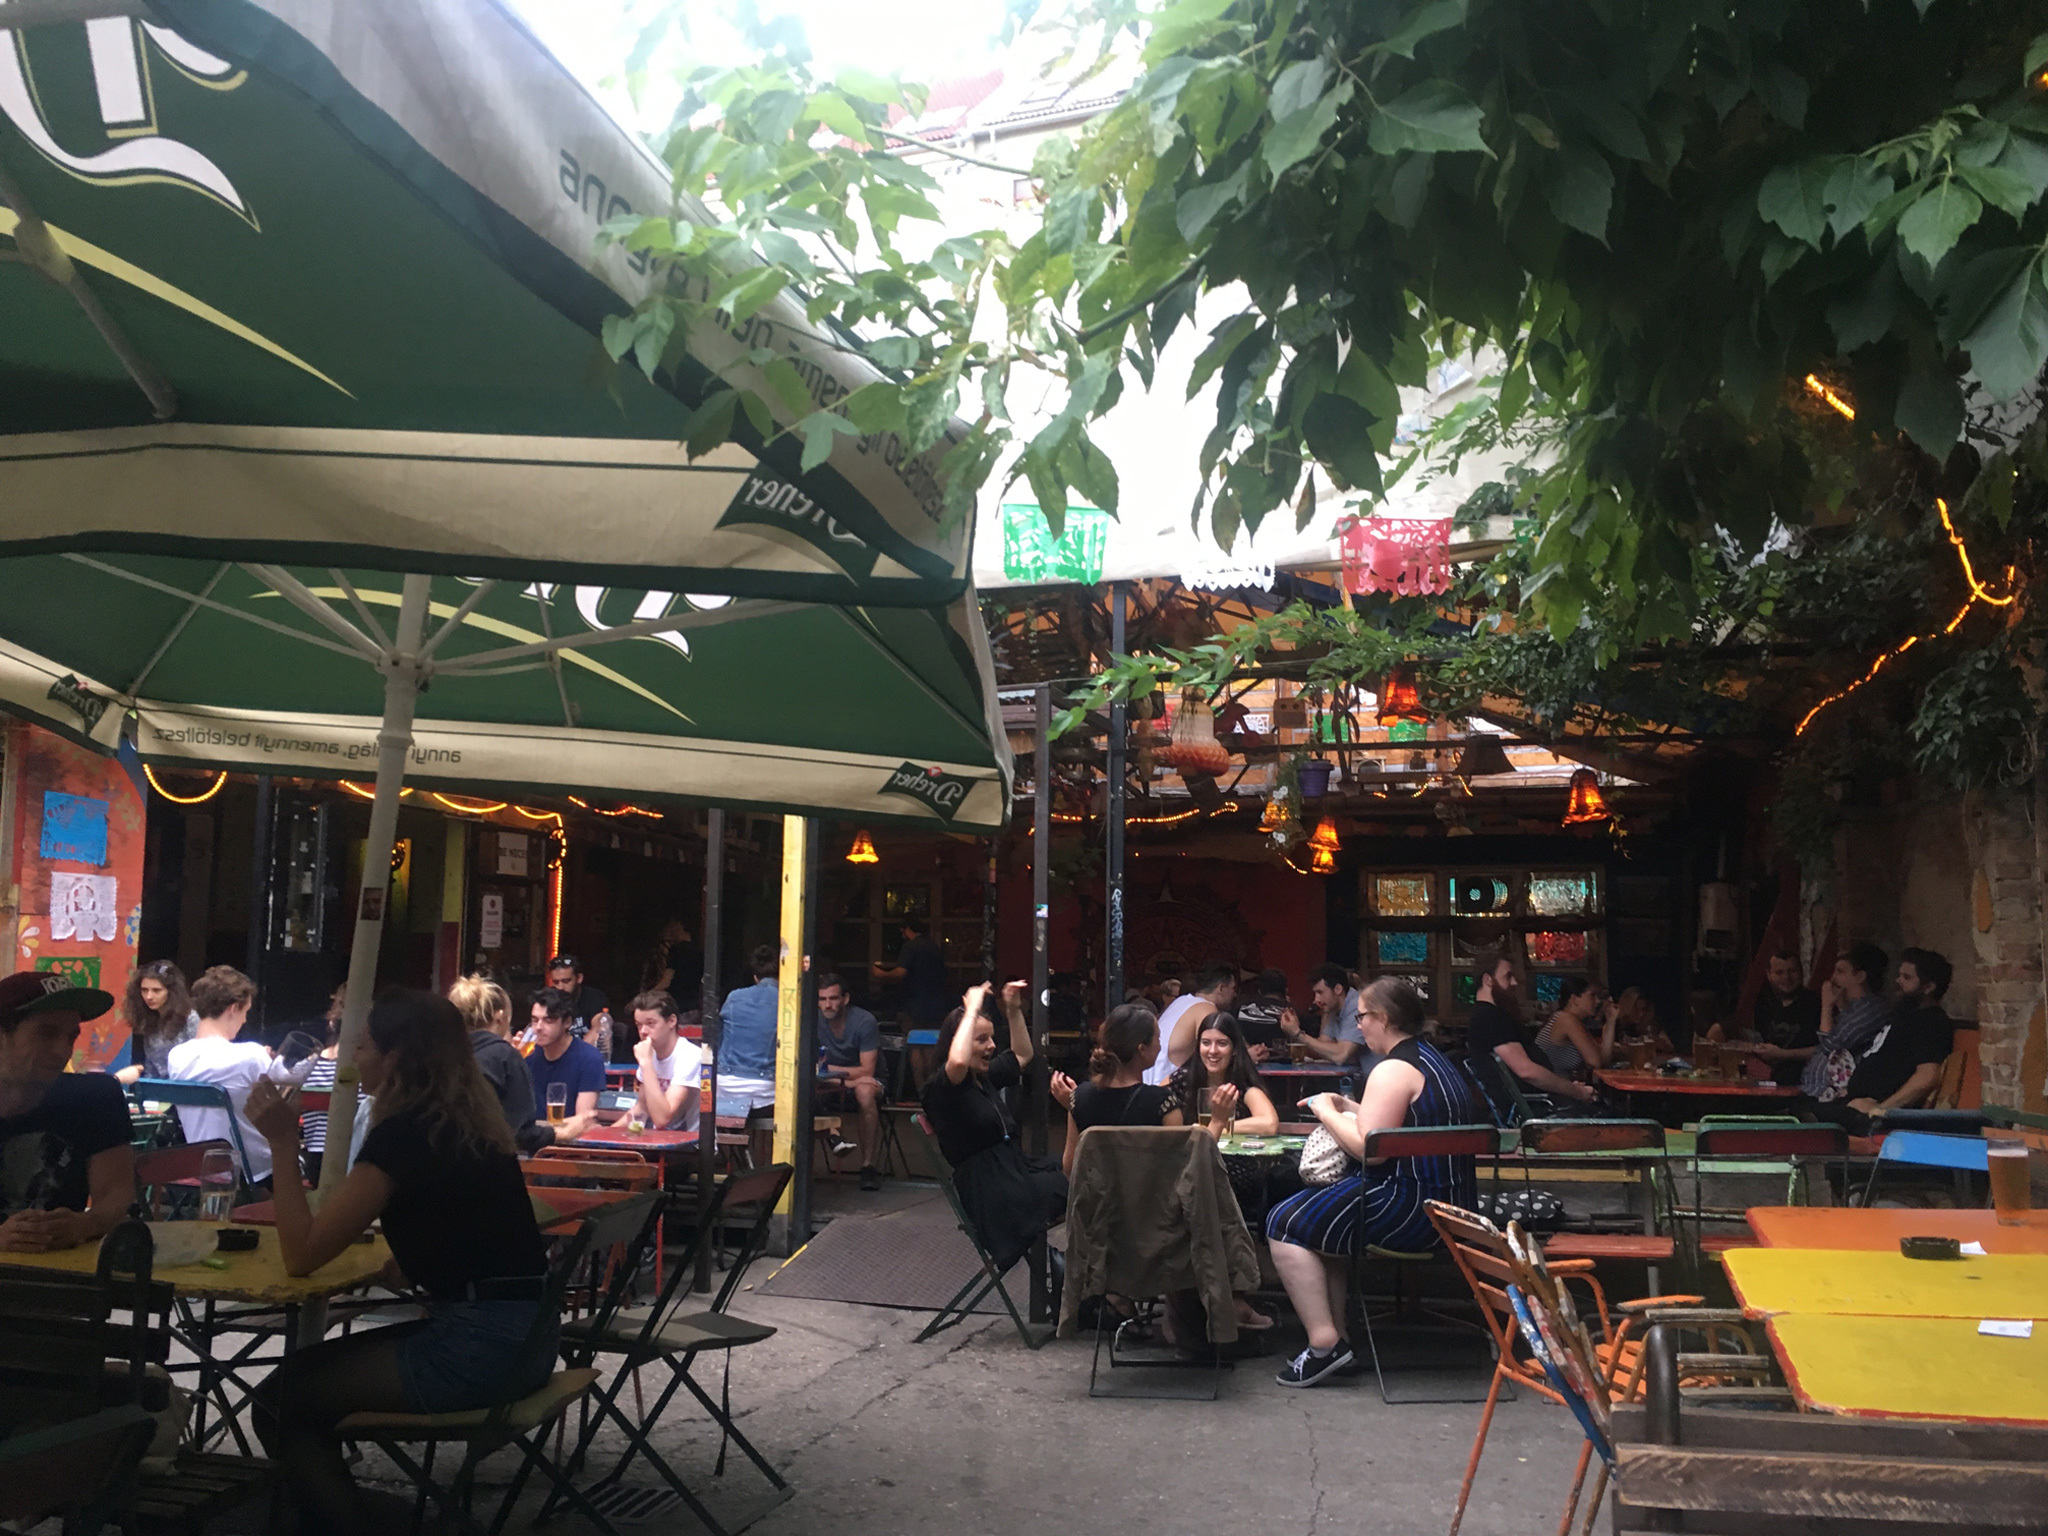 The terrace at Ellatò Kert bar in Budapest